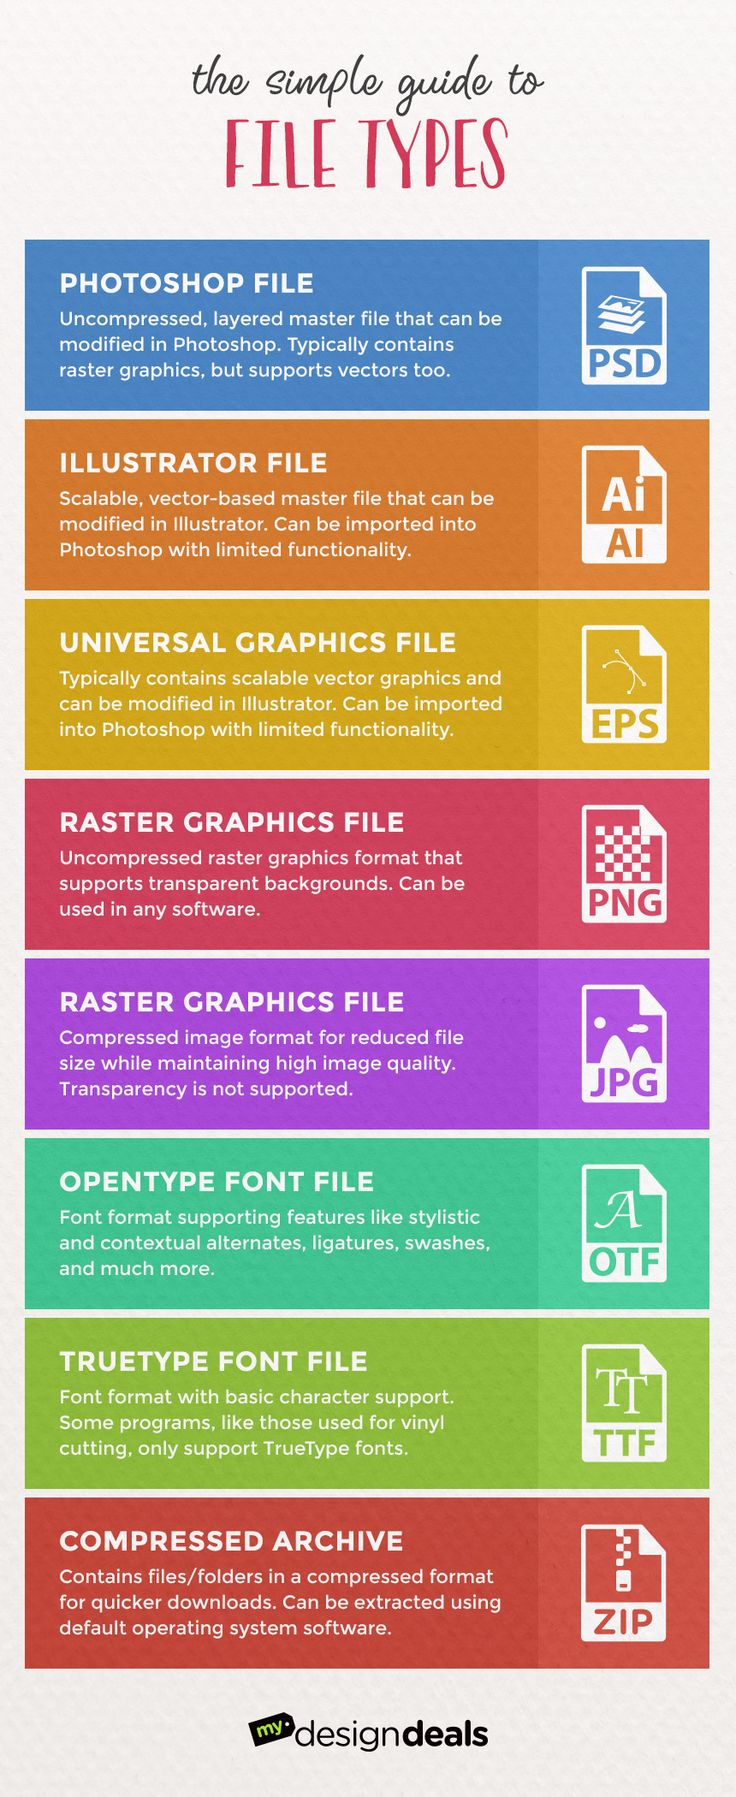 The Simple Guide to File Types for Designers - Learn what software is needed to open and use the most common file formats in graphic design.